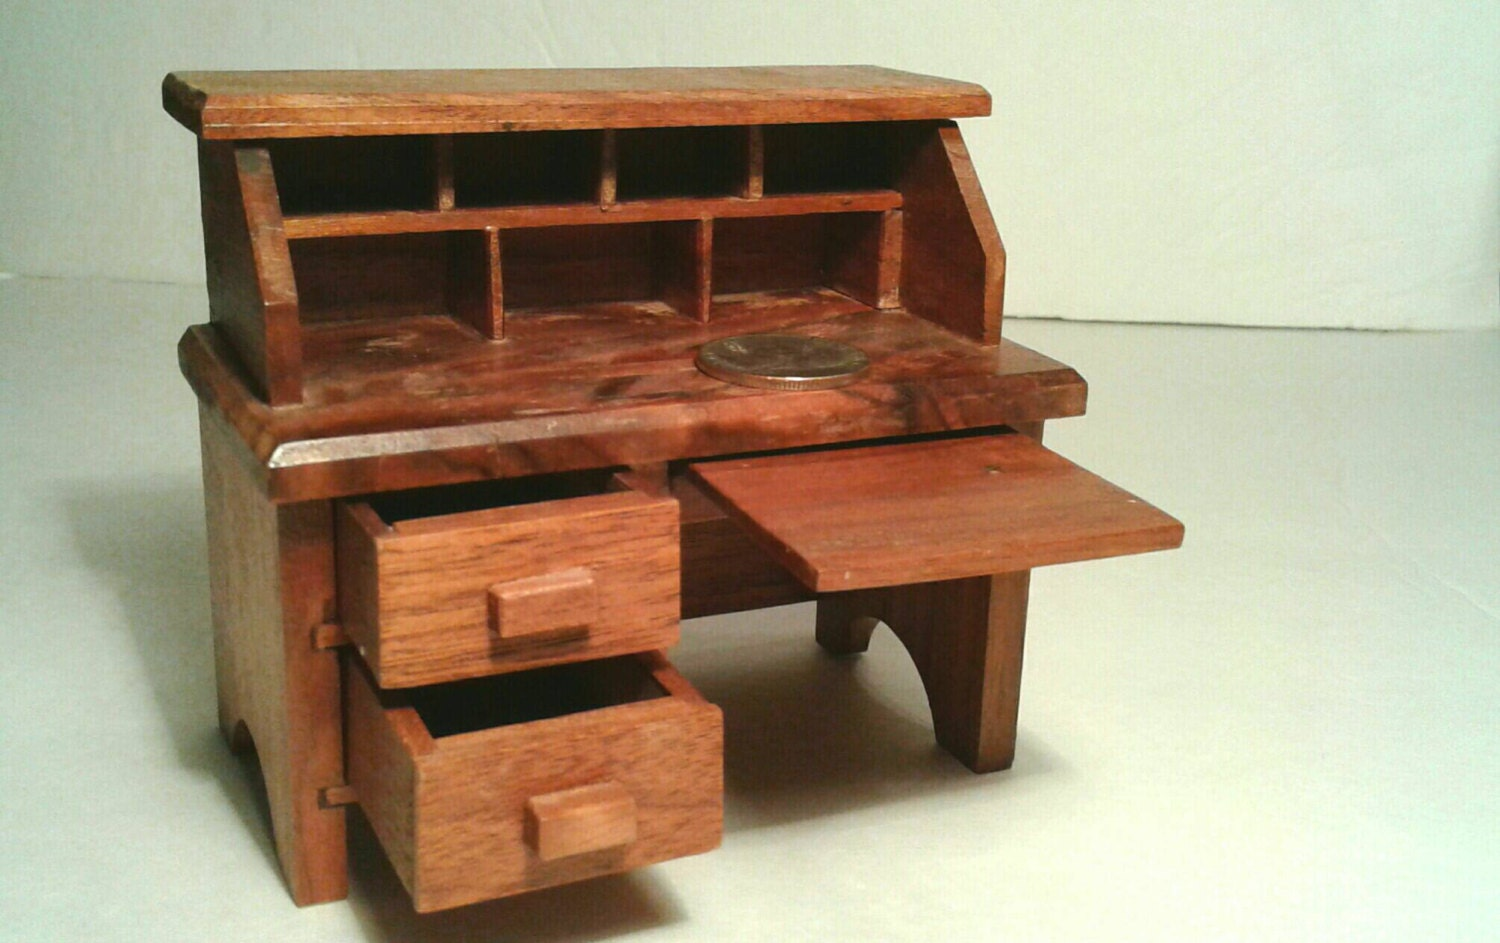 Handmade wooden dollhouse furniture desk drawers pull out Unique wooden furniture